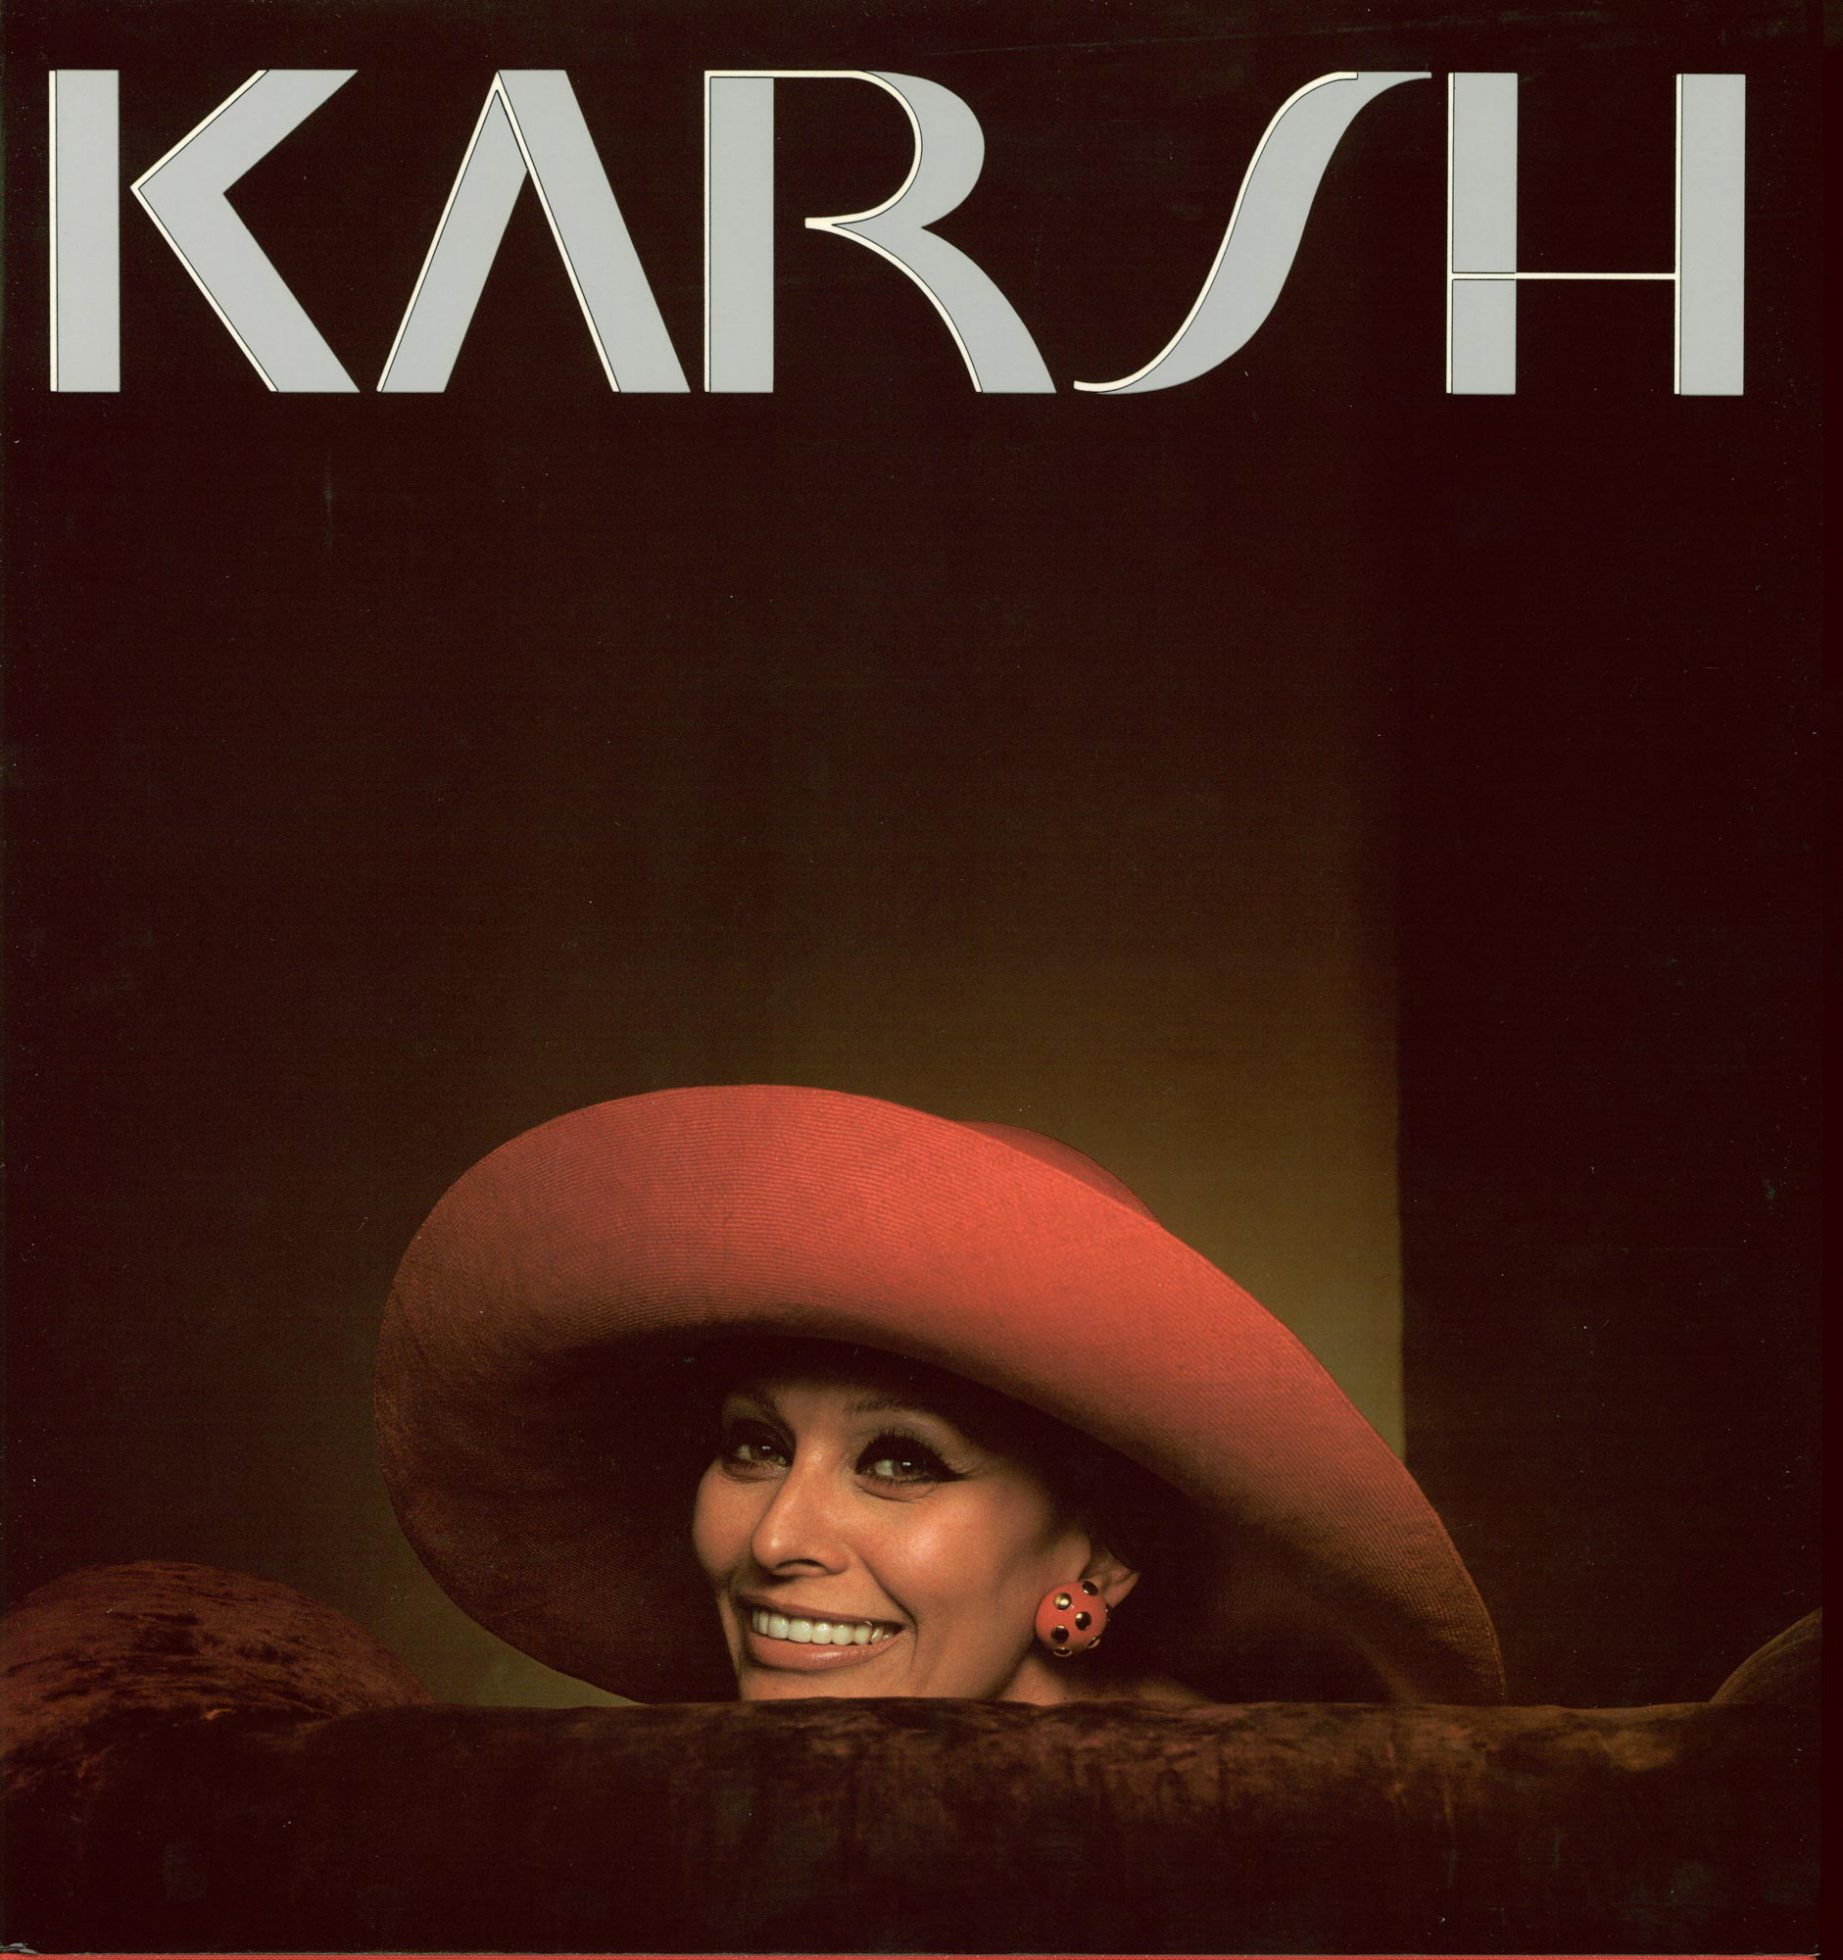 Karsh: A Sixty-Year Retrospective